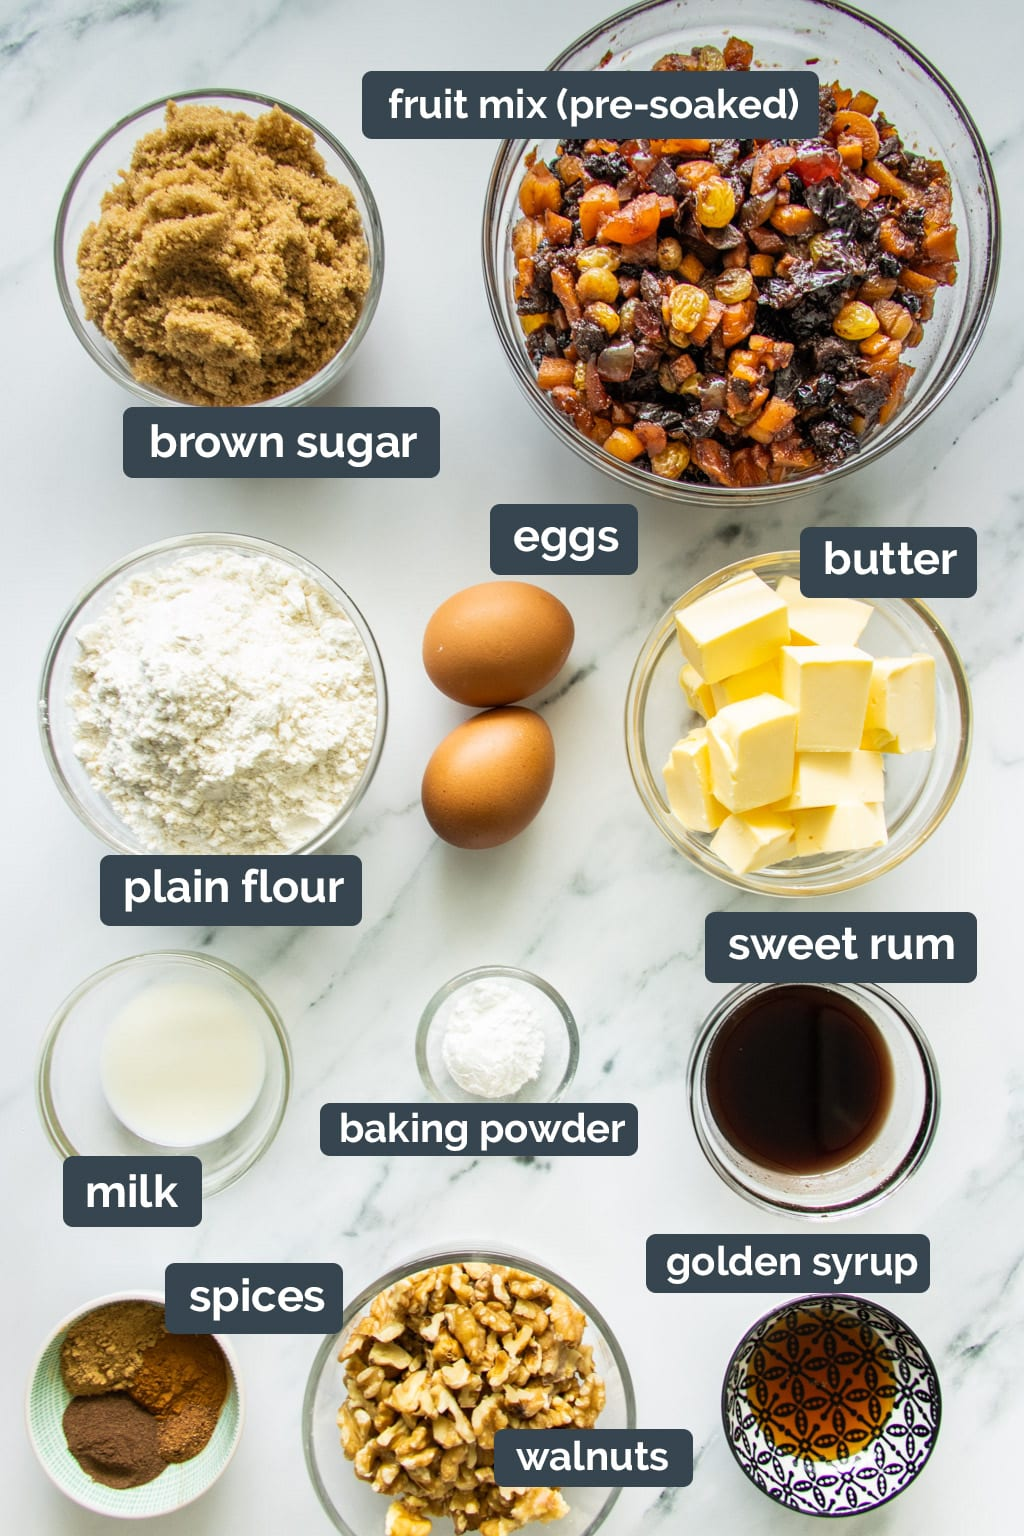 Ingredients for moist fruit cake